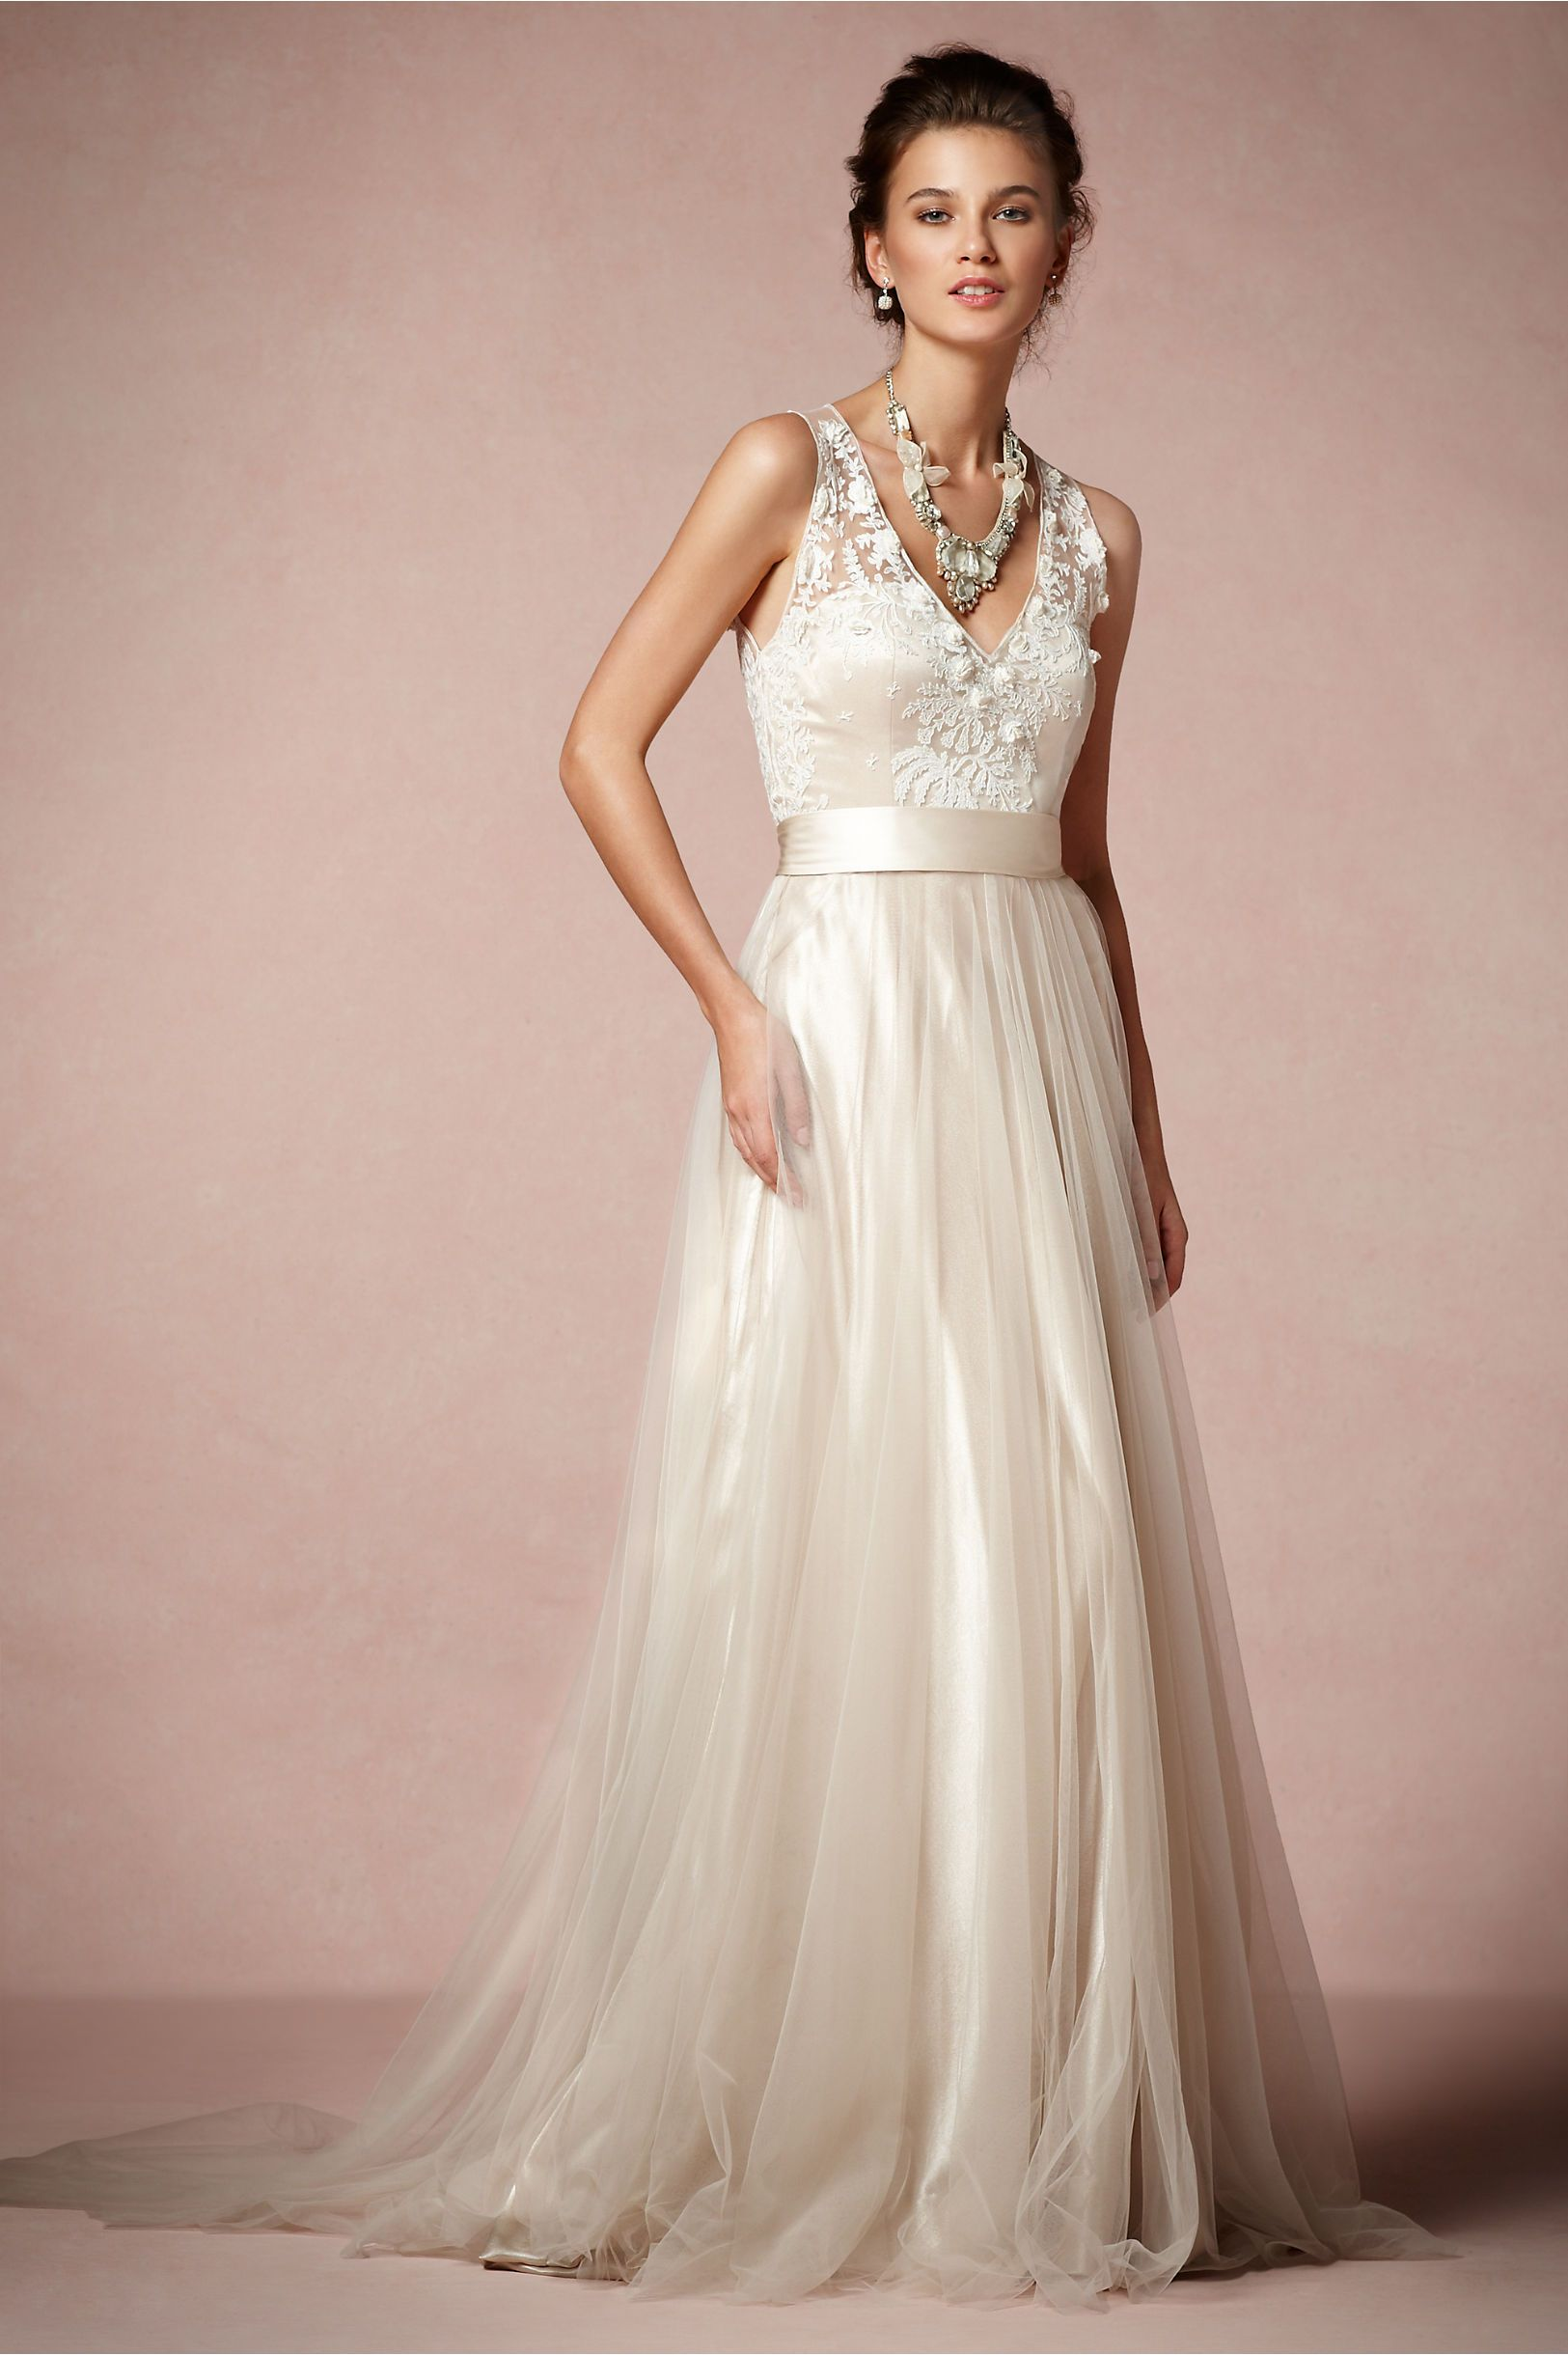 Onyx Gown from BHLDN | Wed | Pinterest | Novia de encaje, Vestidos ...